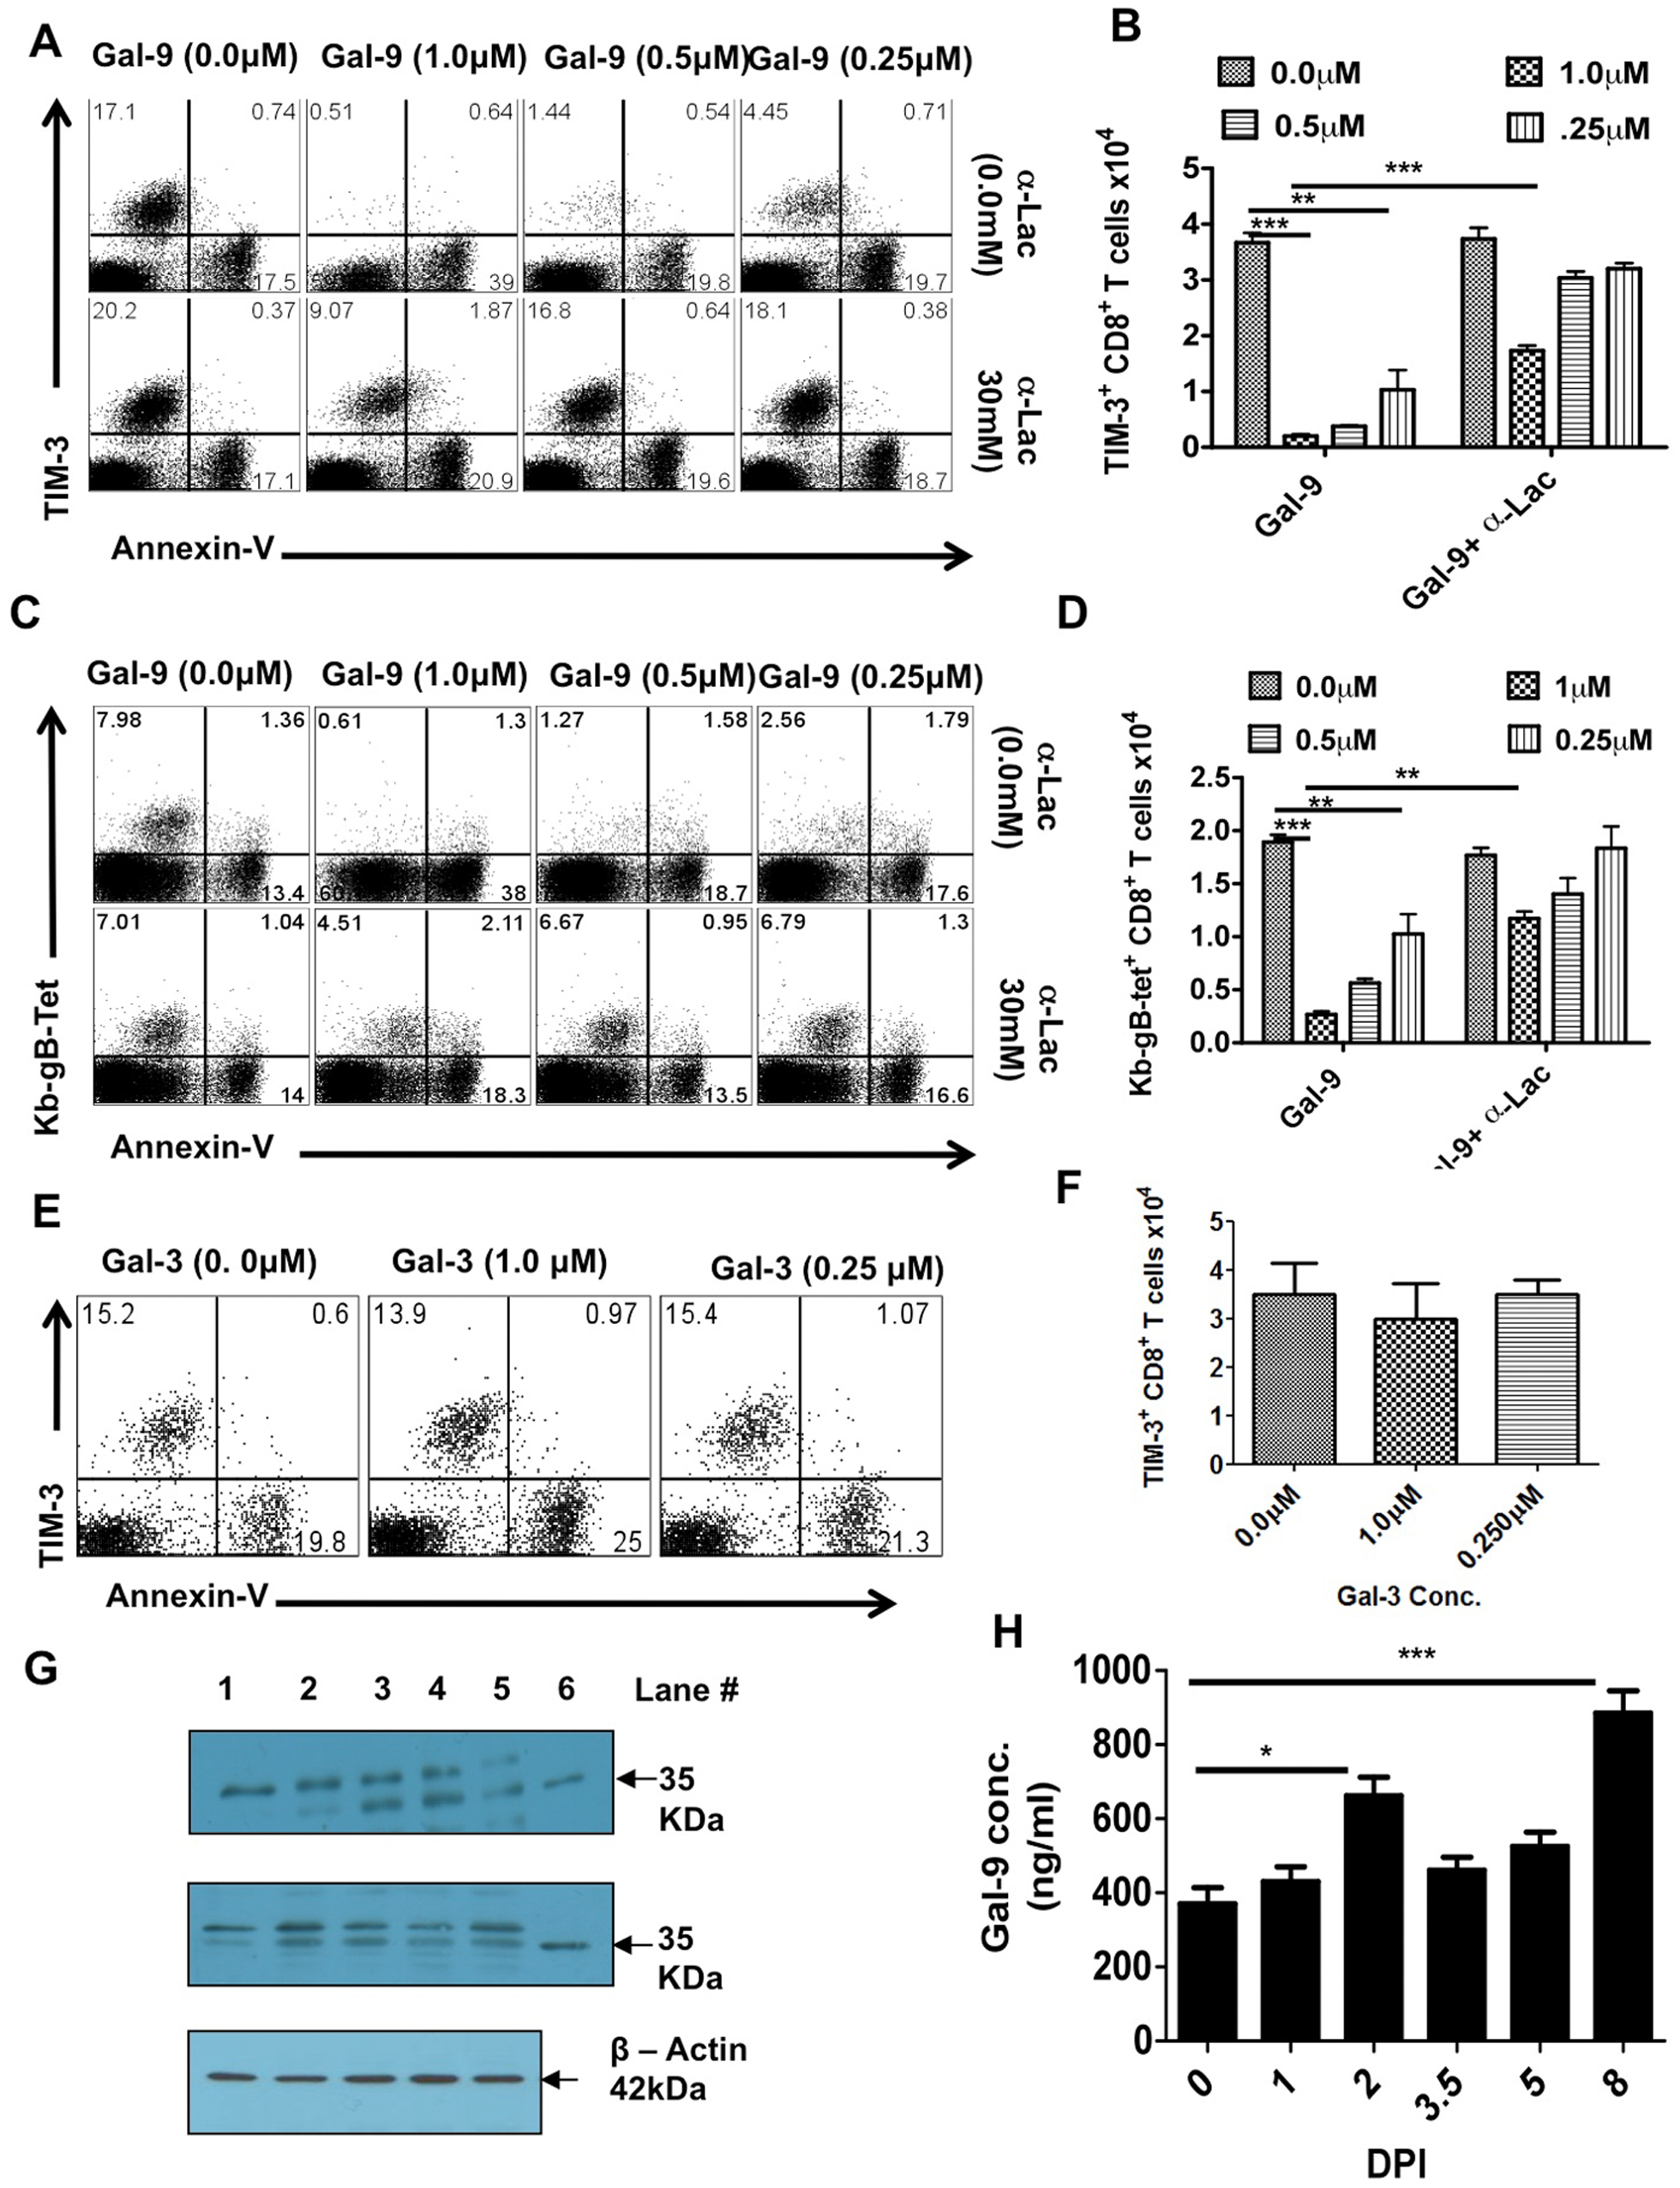 Galectin-9 induces apoptosis of TIM-3 expressing CD8<sup>+</sup> T cells in vitro and its expression is up regulated in the lymphoid organs after HSV infection.